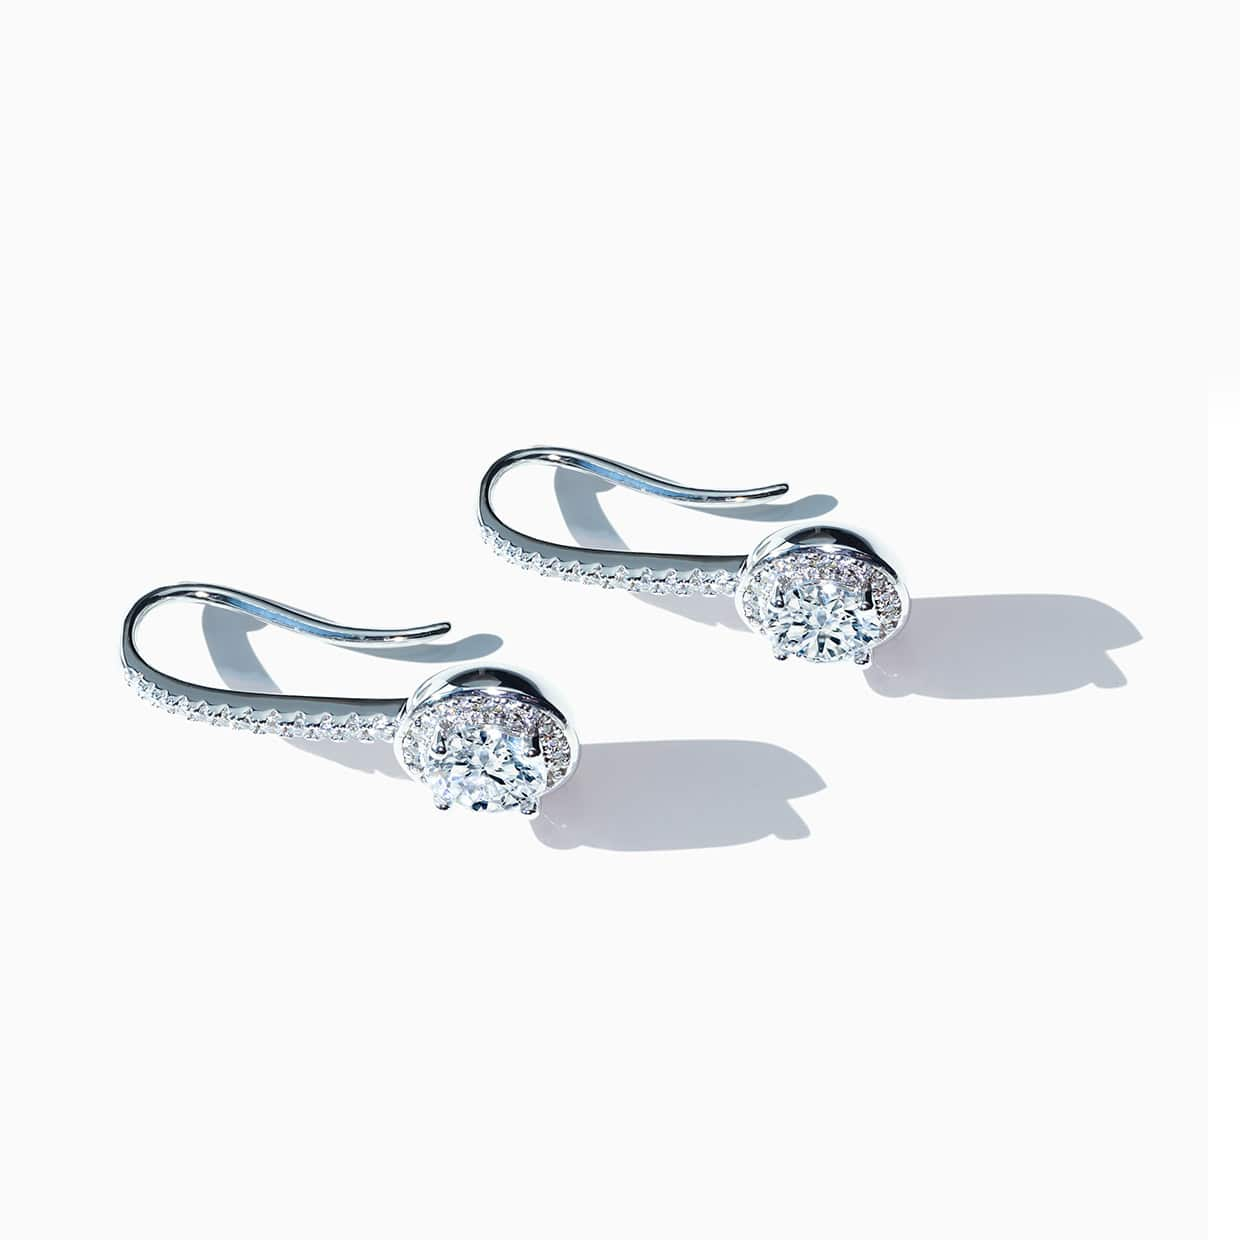 Oxford Silver Long Halo Earrings - Abelstedt